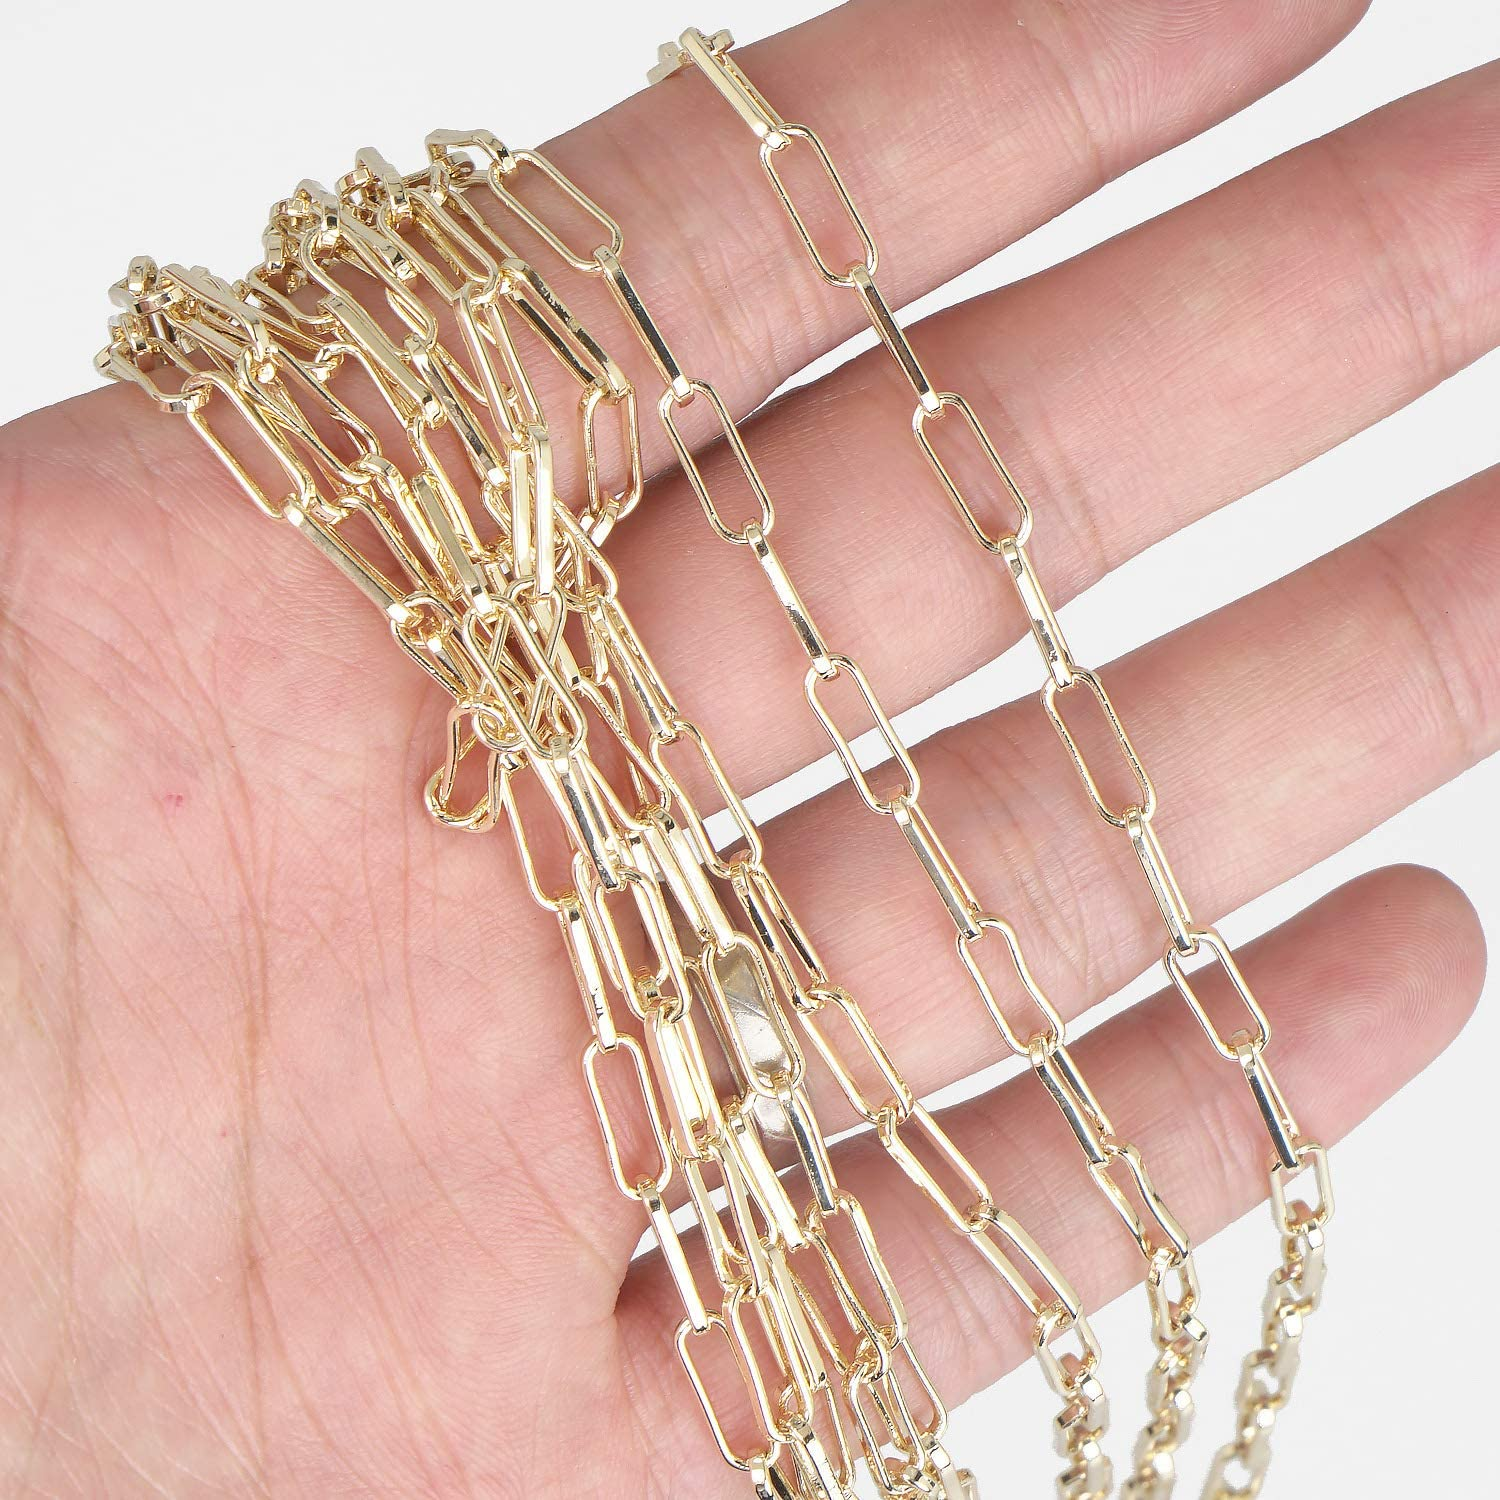 14K Gold plated Brass Chains Link 3.6 Sale special price C Bombing new work 10mm Chain Wholesale